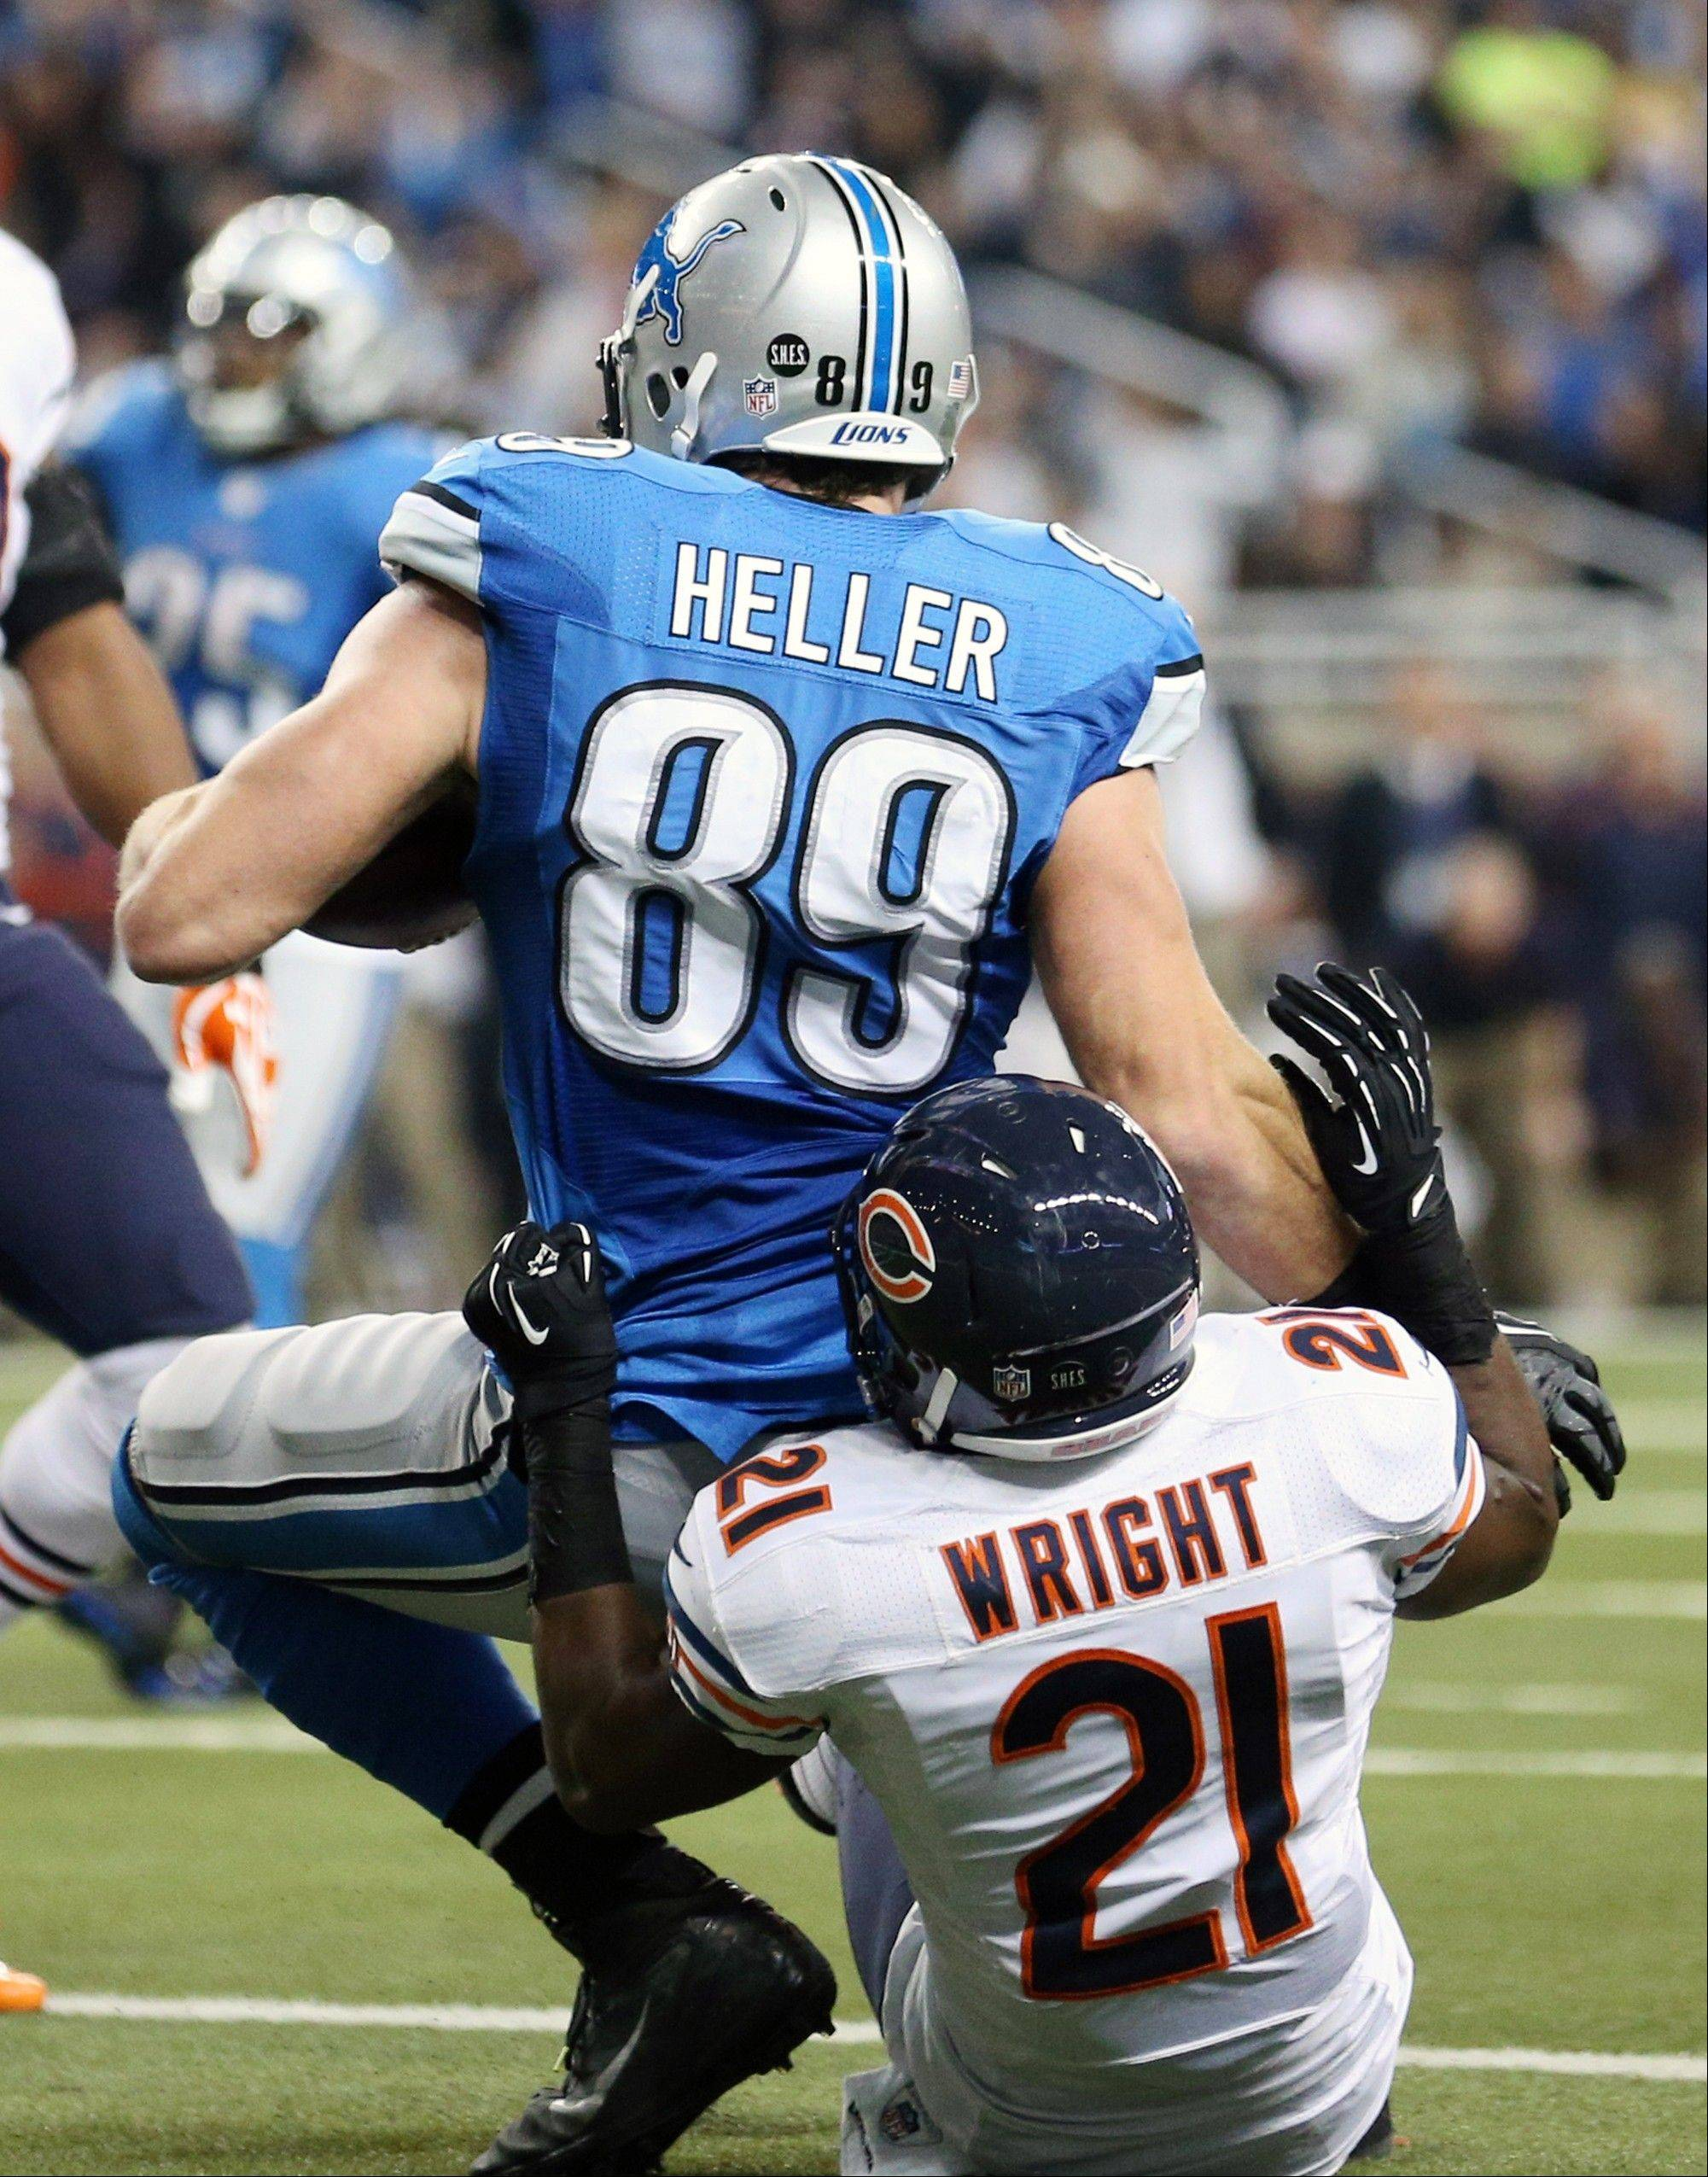 Detroit Lions tight end Will Heller (89), defended by Chicago Bears strong safety Major Wright (21), falls into the end zone for a touchdown during the third quarter.